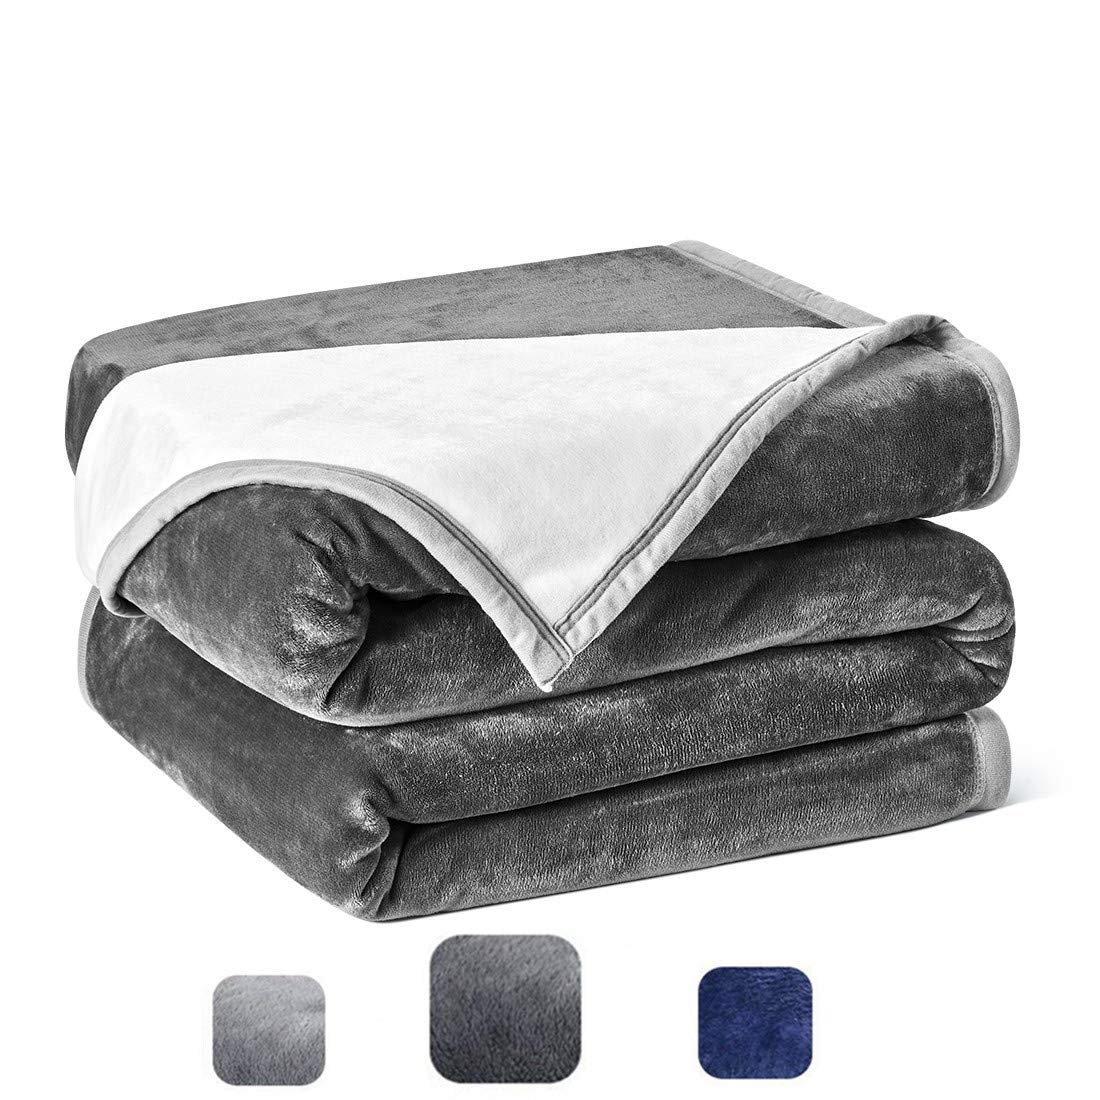 Cozylife Fleece Luxury Blanket Queen Size Super Soft Double-Sides Reversible Warm Flannel Blanket for Bed Couch Sofa,90x90 Inches,Dark Grey